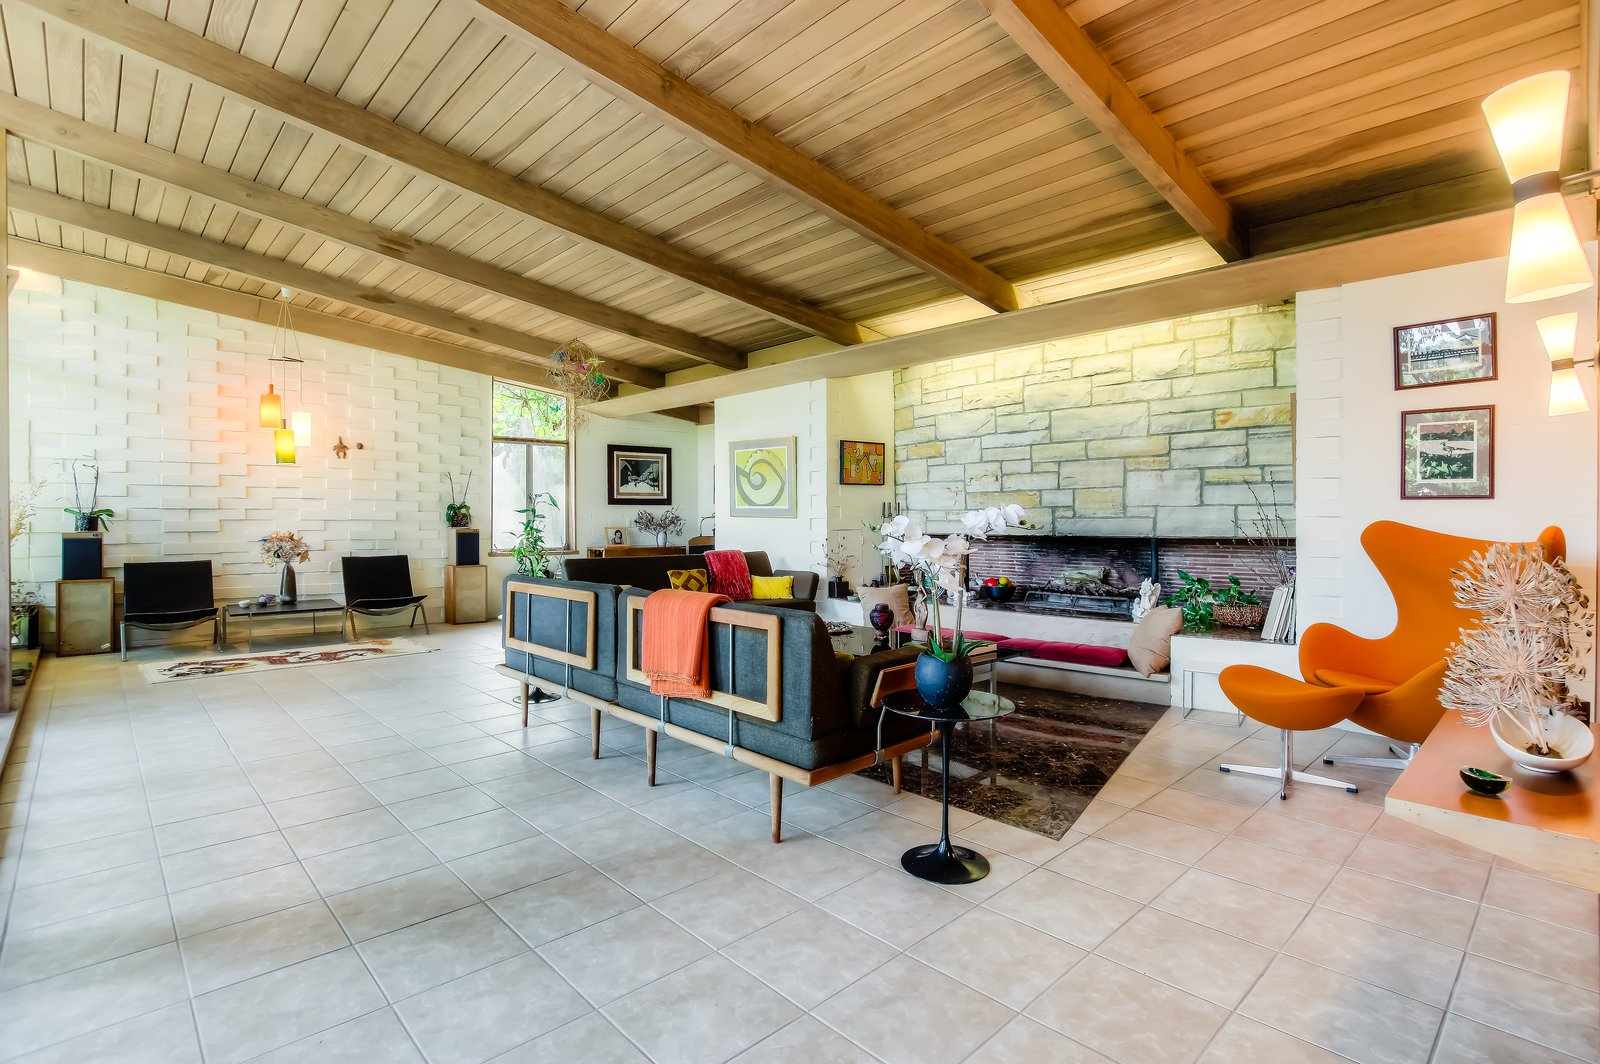 Living Room, Chair, Standard Layout Fireplace, Pendant Lighting, End Tables, Bench, Sofa, Coffee Tables, Ottomans, Wall Lighting, and Recliner  Photo 1 of 10 in An Exceptional Midcentury by Case Study Architect Pierre Koenig Hits the Market